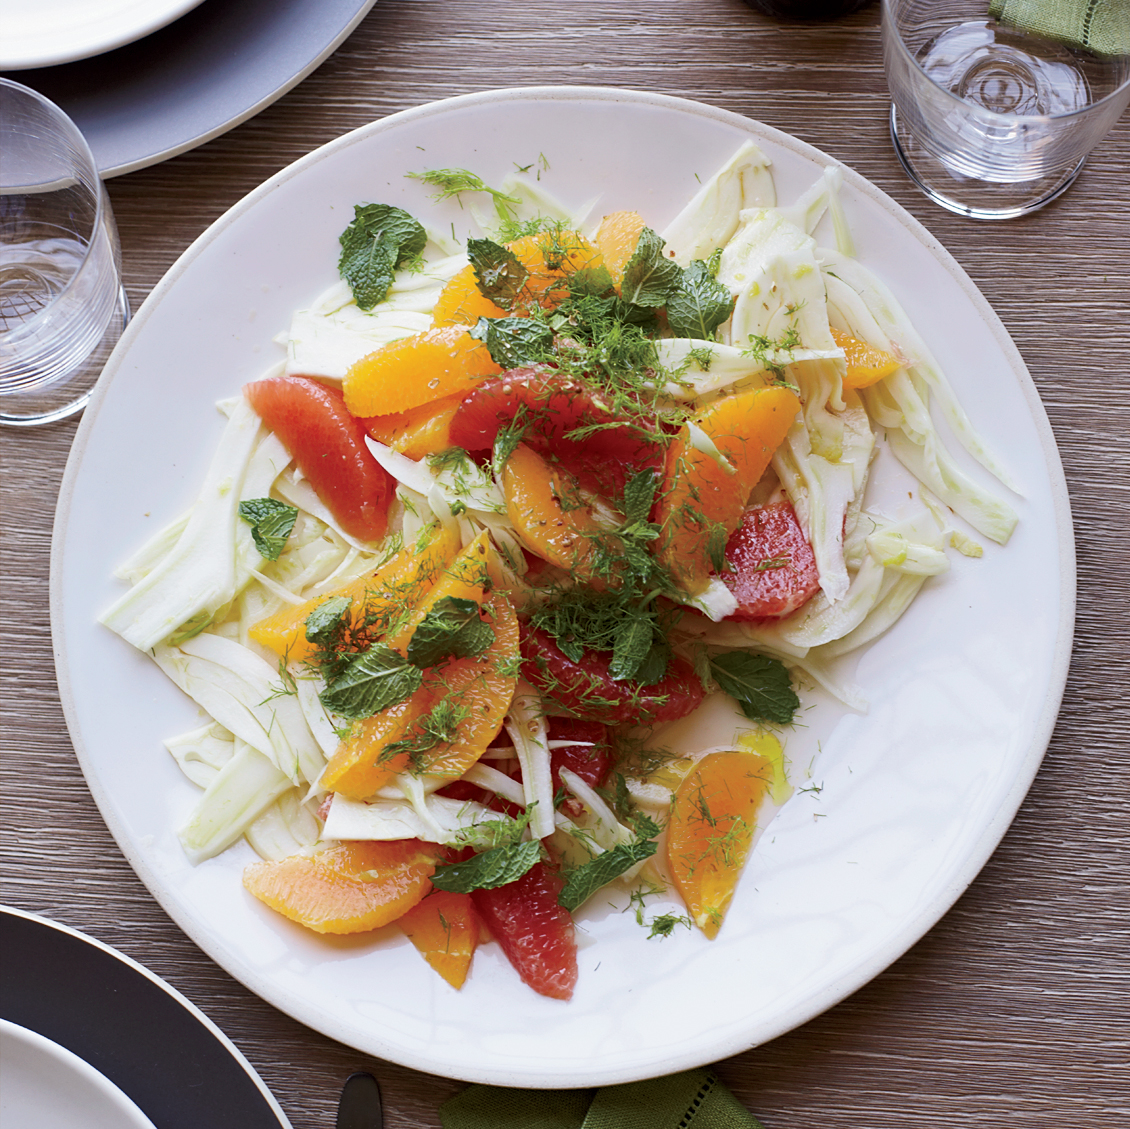 Fennel-and-Citrus Salad with Mint